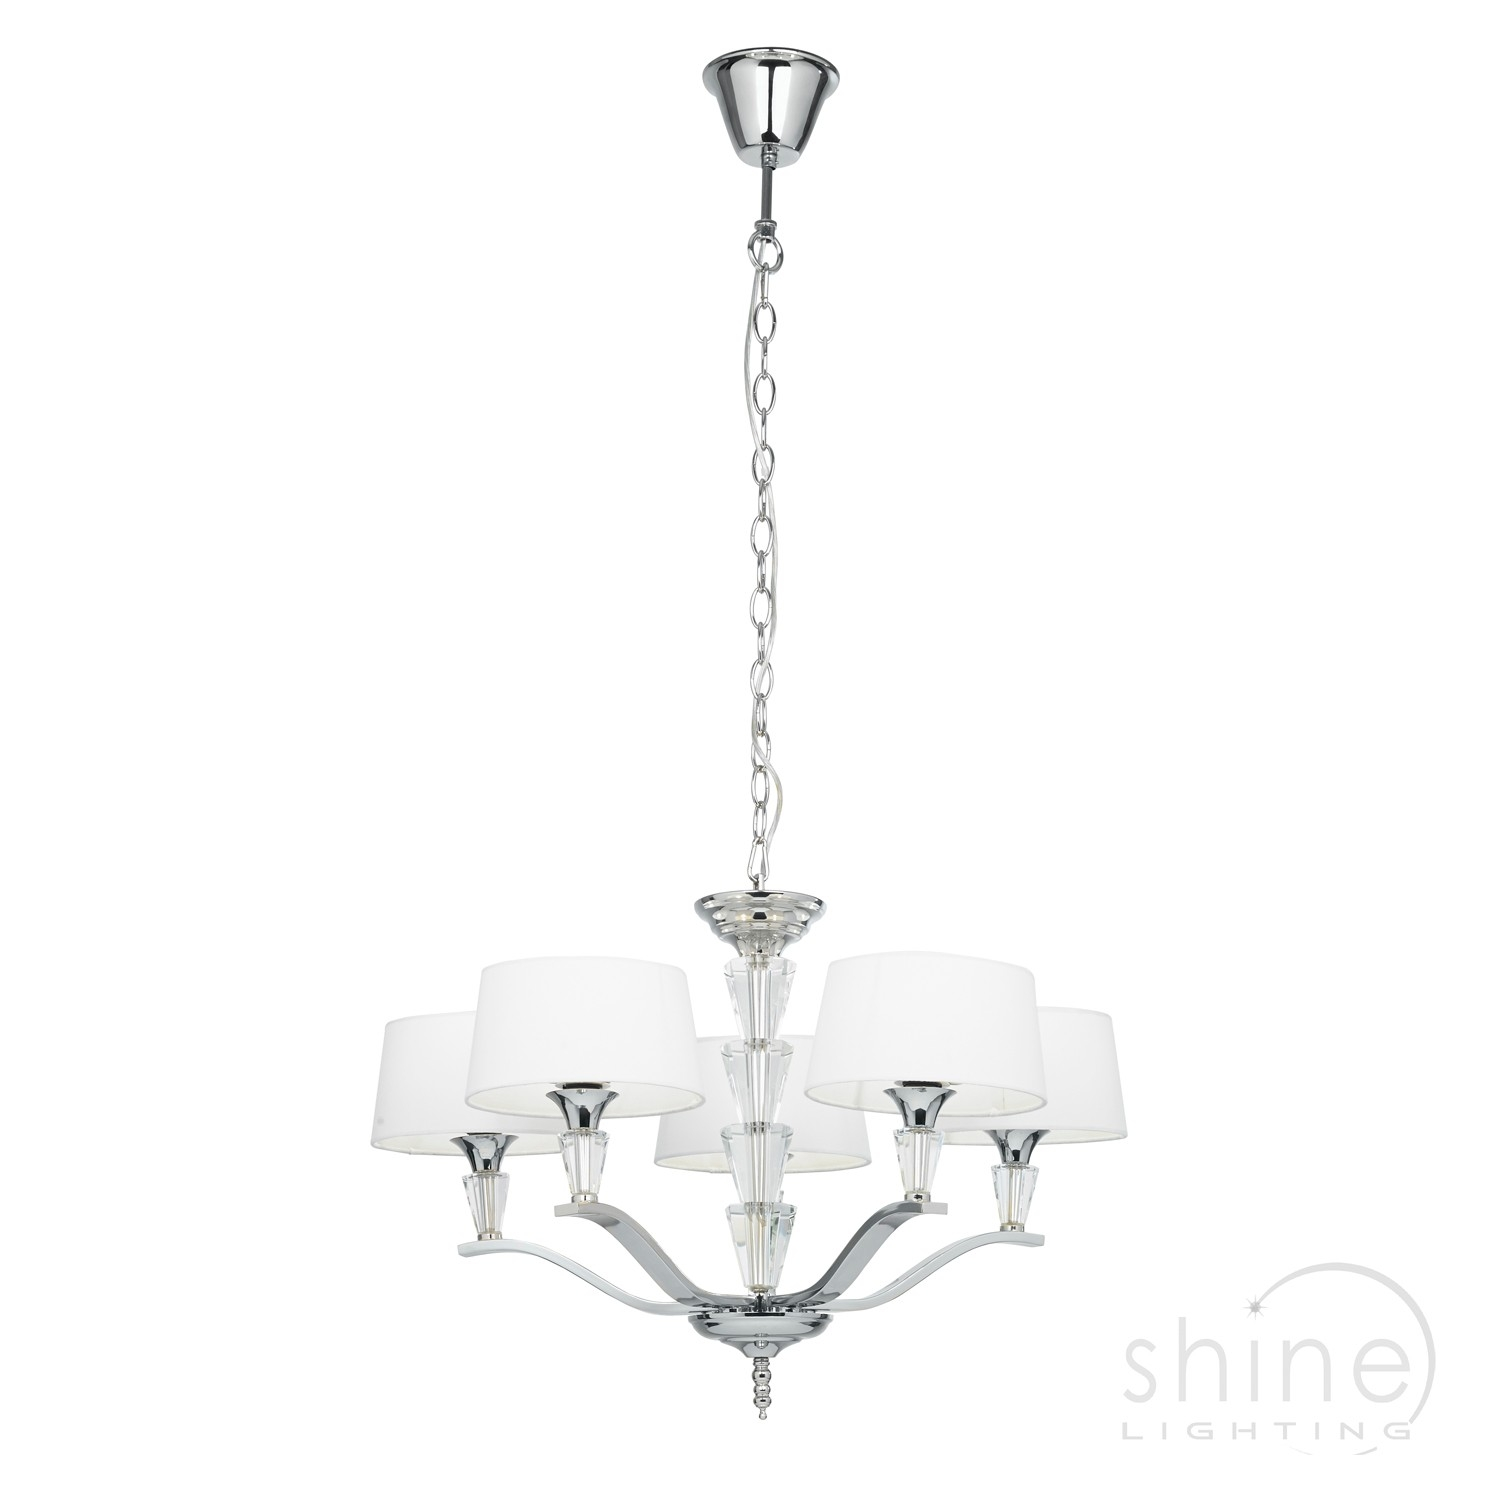 Fiennes 5ni 5 Light Chandelier In Polished Nickel Endon Lighting Inside Endon Lighting Chandeliers (View 5 of 25)